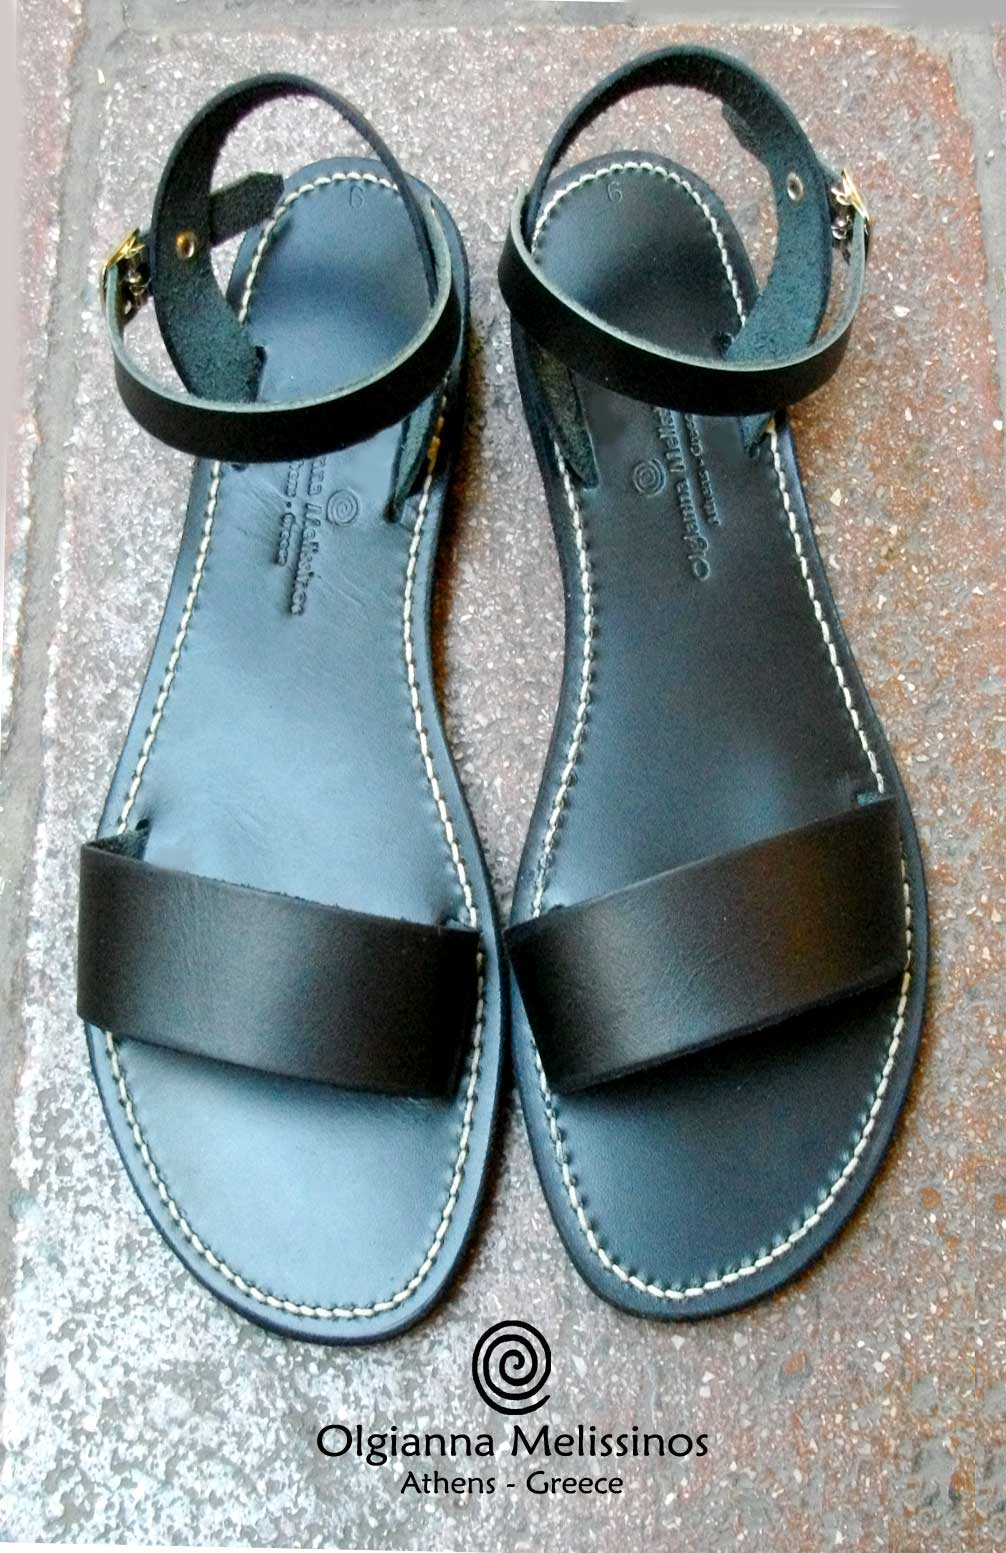 Handmade Sandals - RHEA BLACK 17/22MM